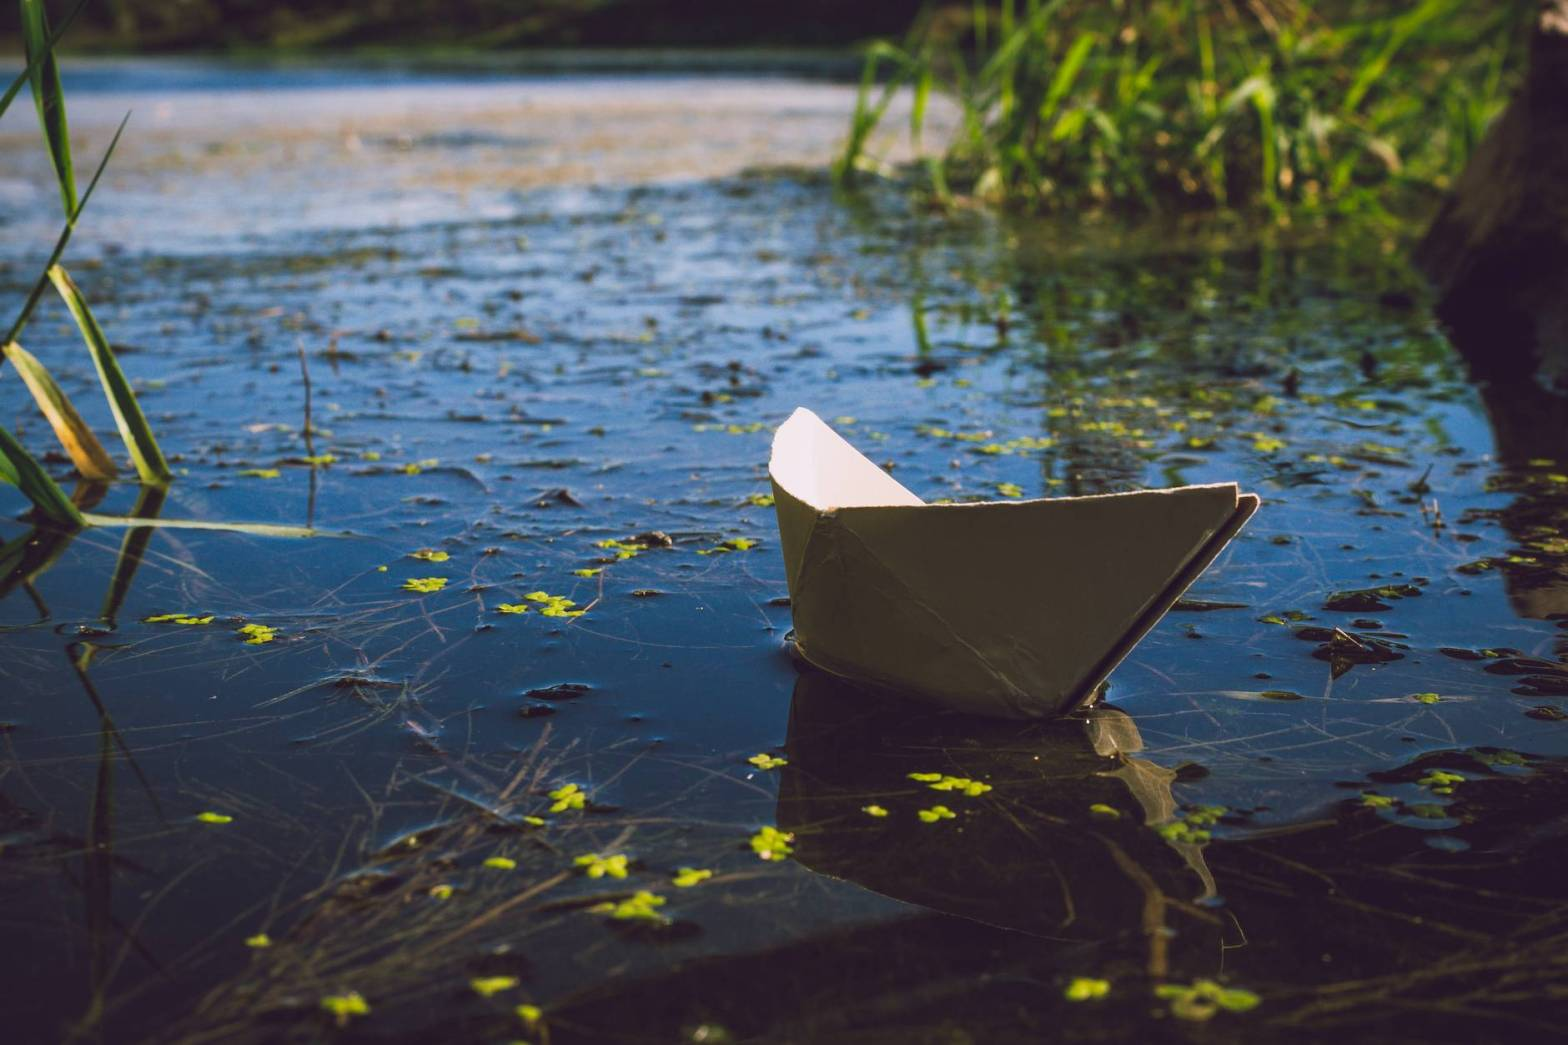 photo of white paper boat on body of water